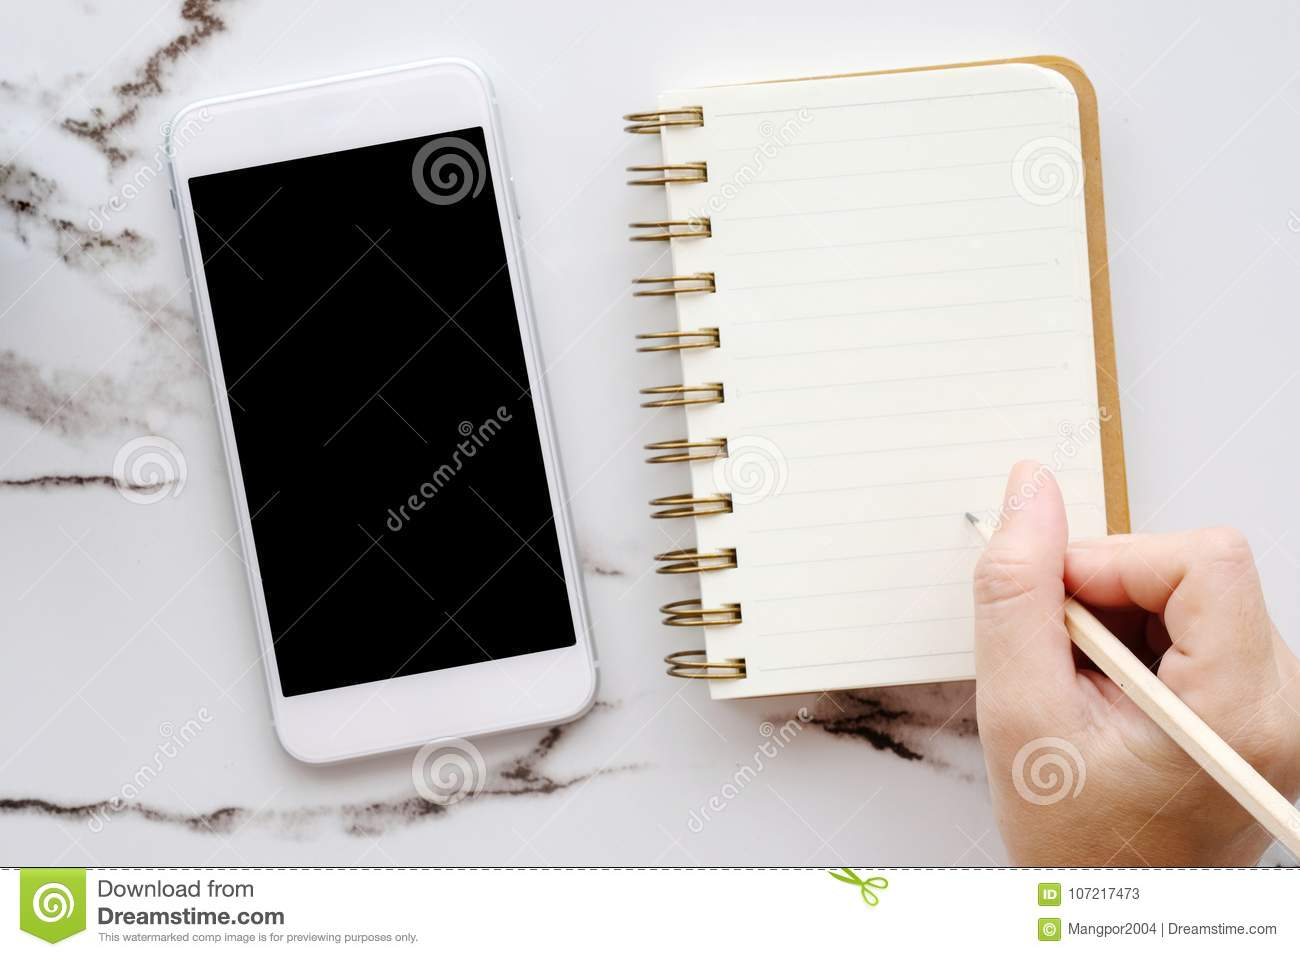 Smart phone with blank screen and hand holding pencil over blank